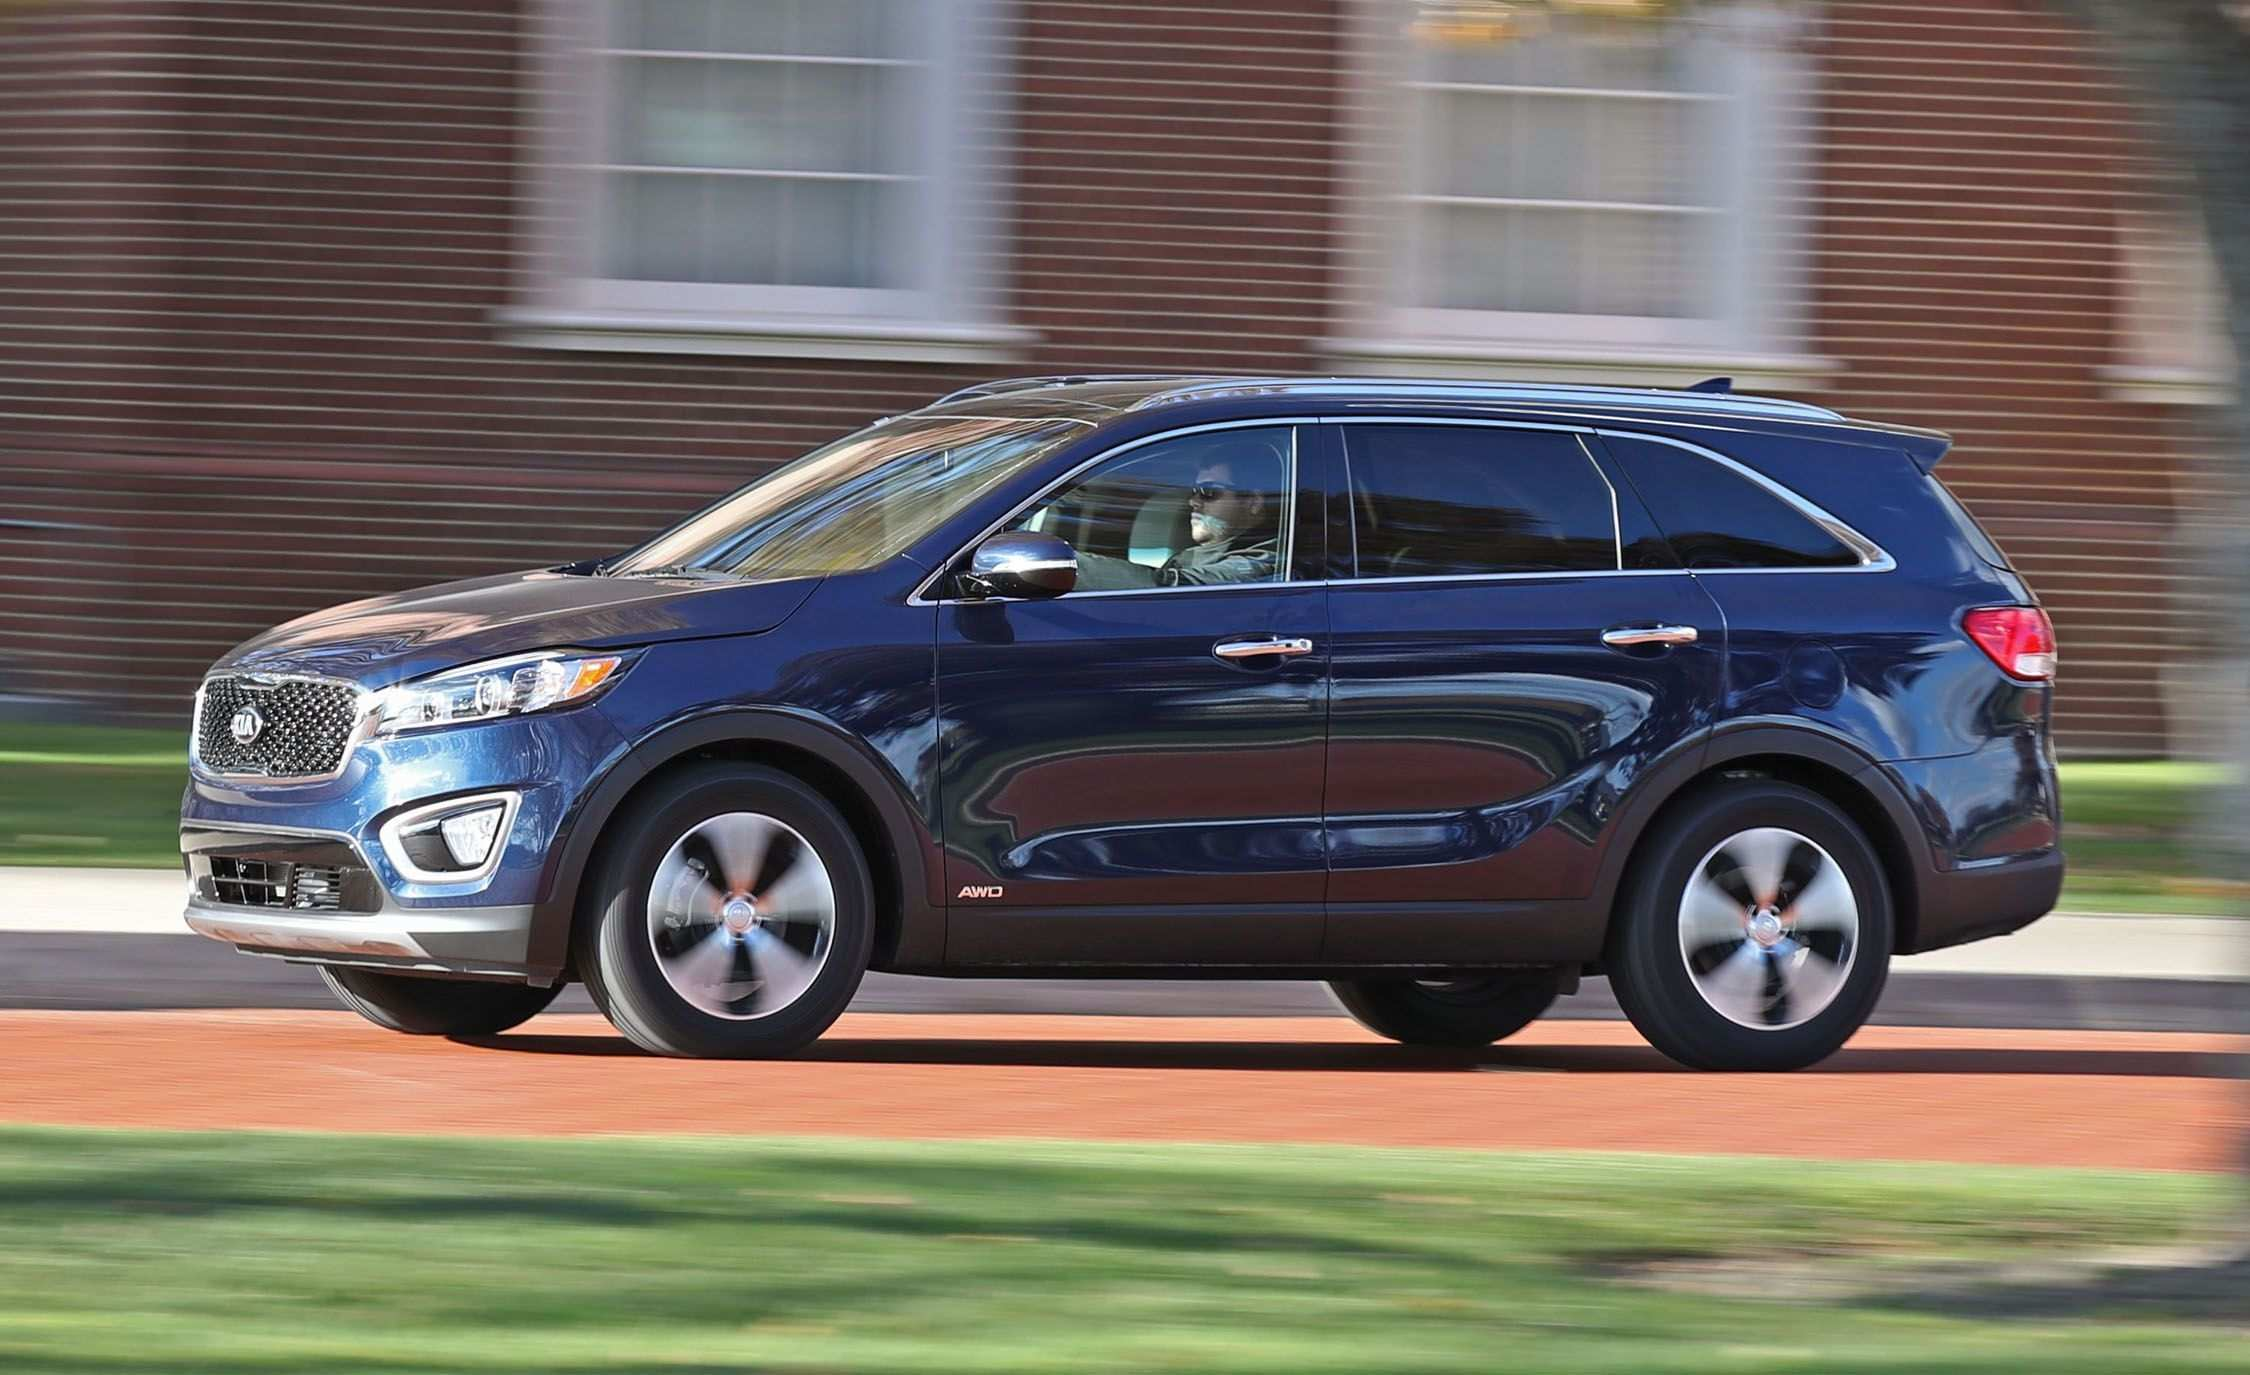 32 New 2019 Kia Sorento Owners Manual Model